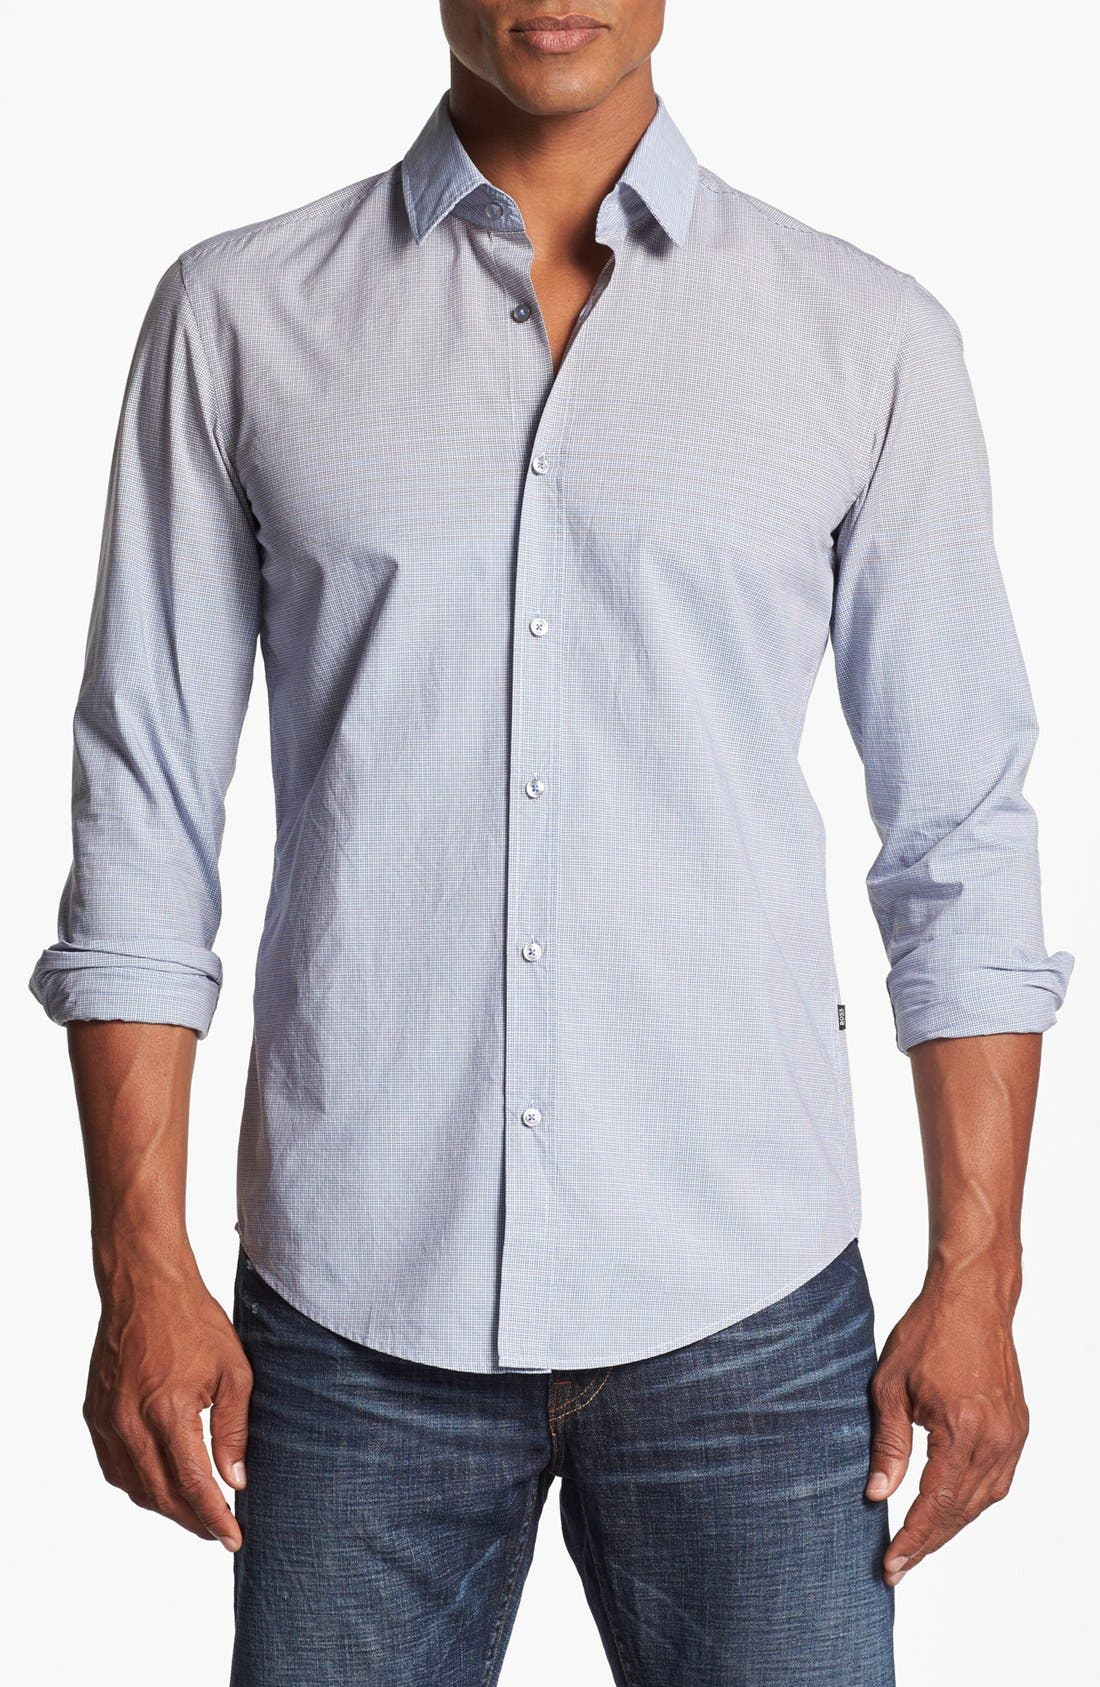 Alternate Image 1 Selected - BOSS HUGO BOSS 'Ronny' Slim Fit Ombré Check Sport Shirt